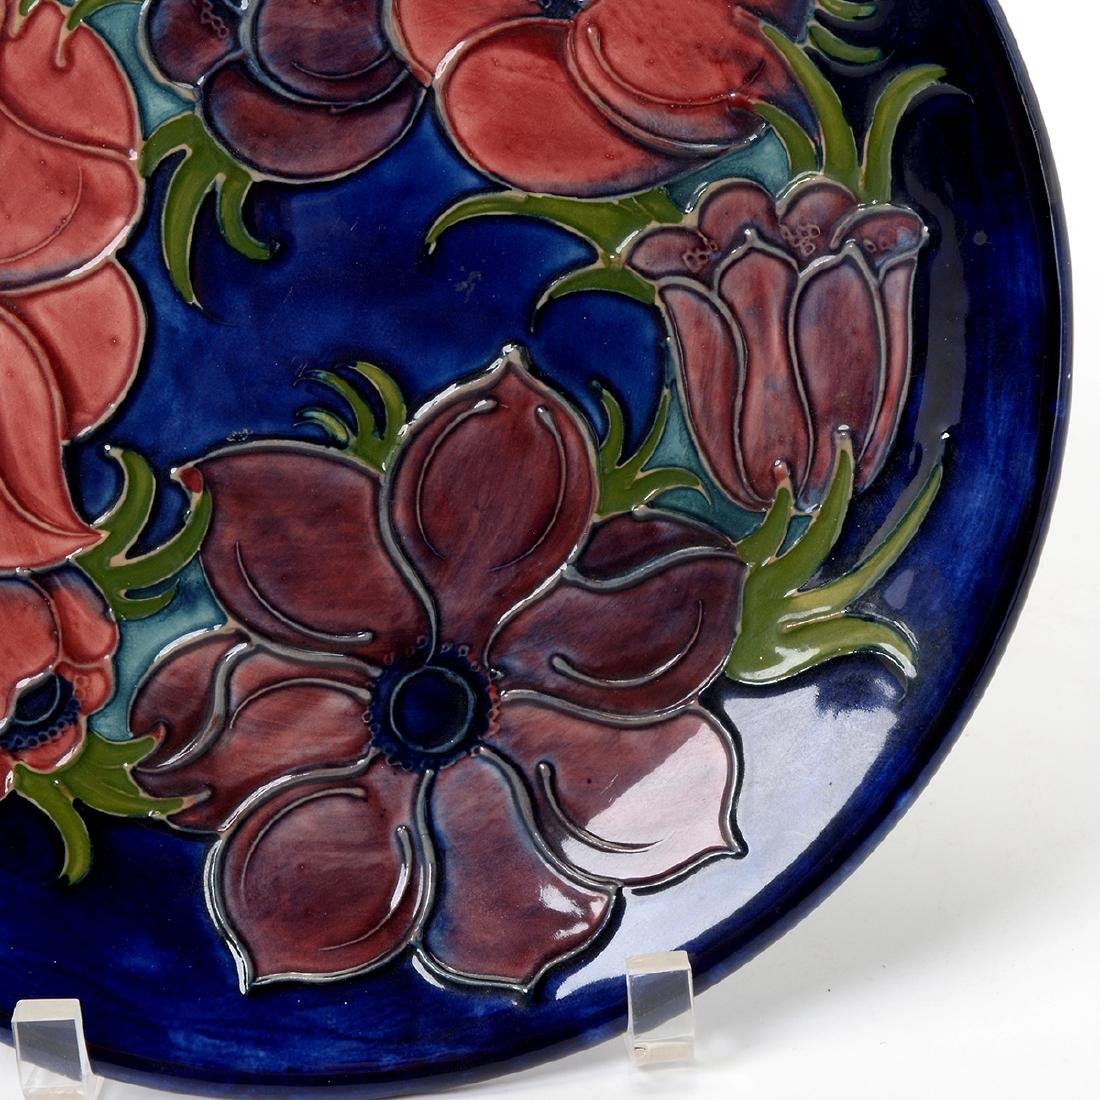 Moorcroft Blue Ground Floral Tubelined Plate - 4